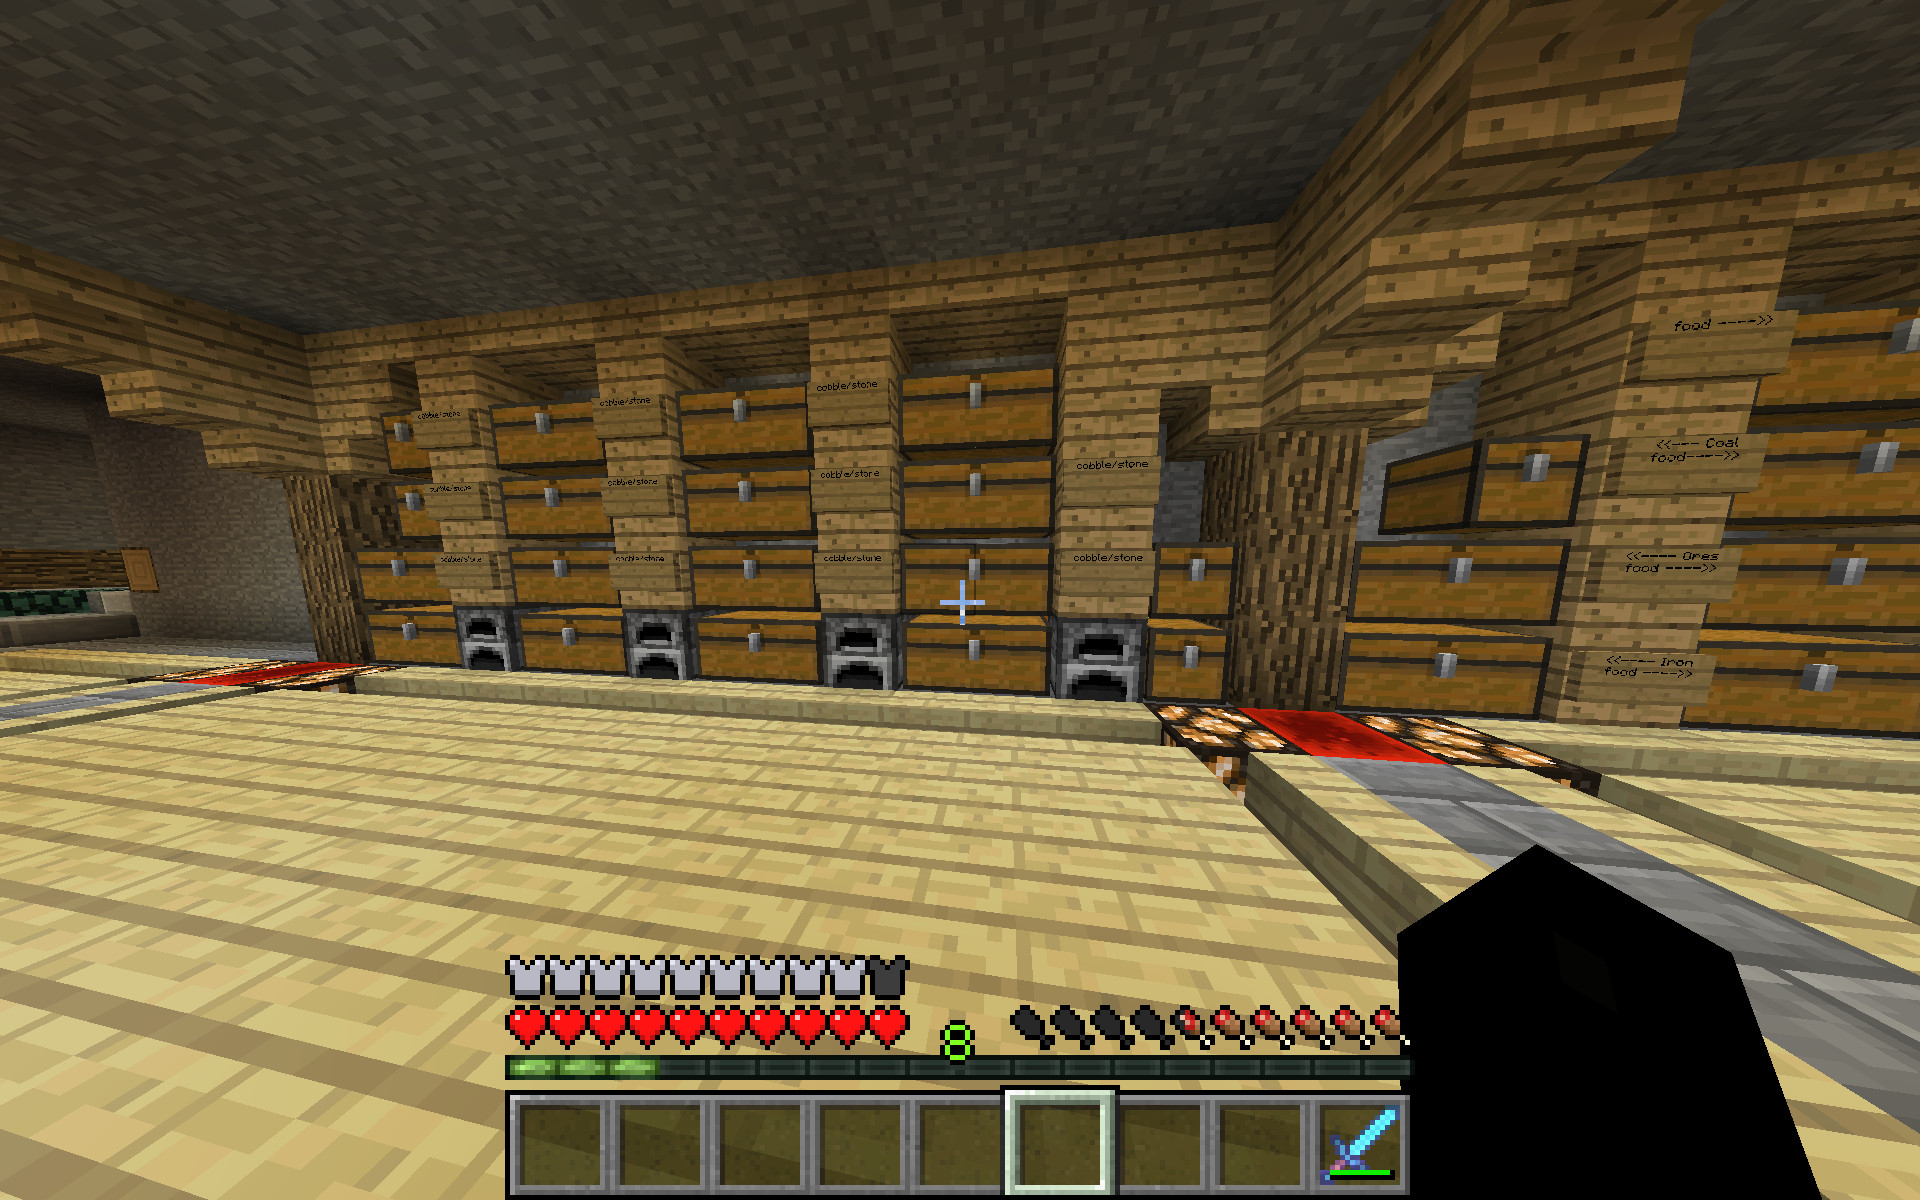 Best ideas about Minecraft Basement Ideas . Save or Pin Ummm What to put in large basement Ideas please Now.